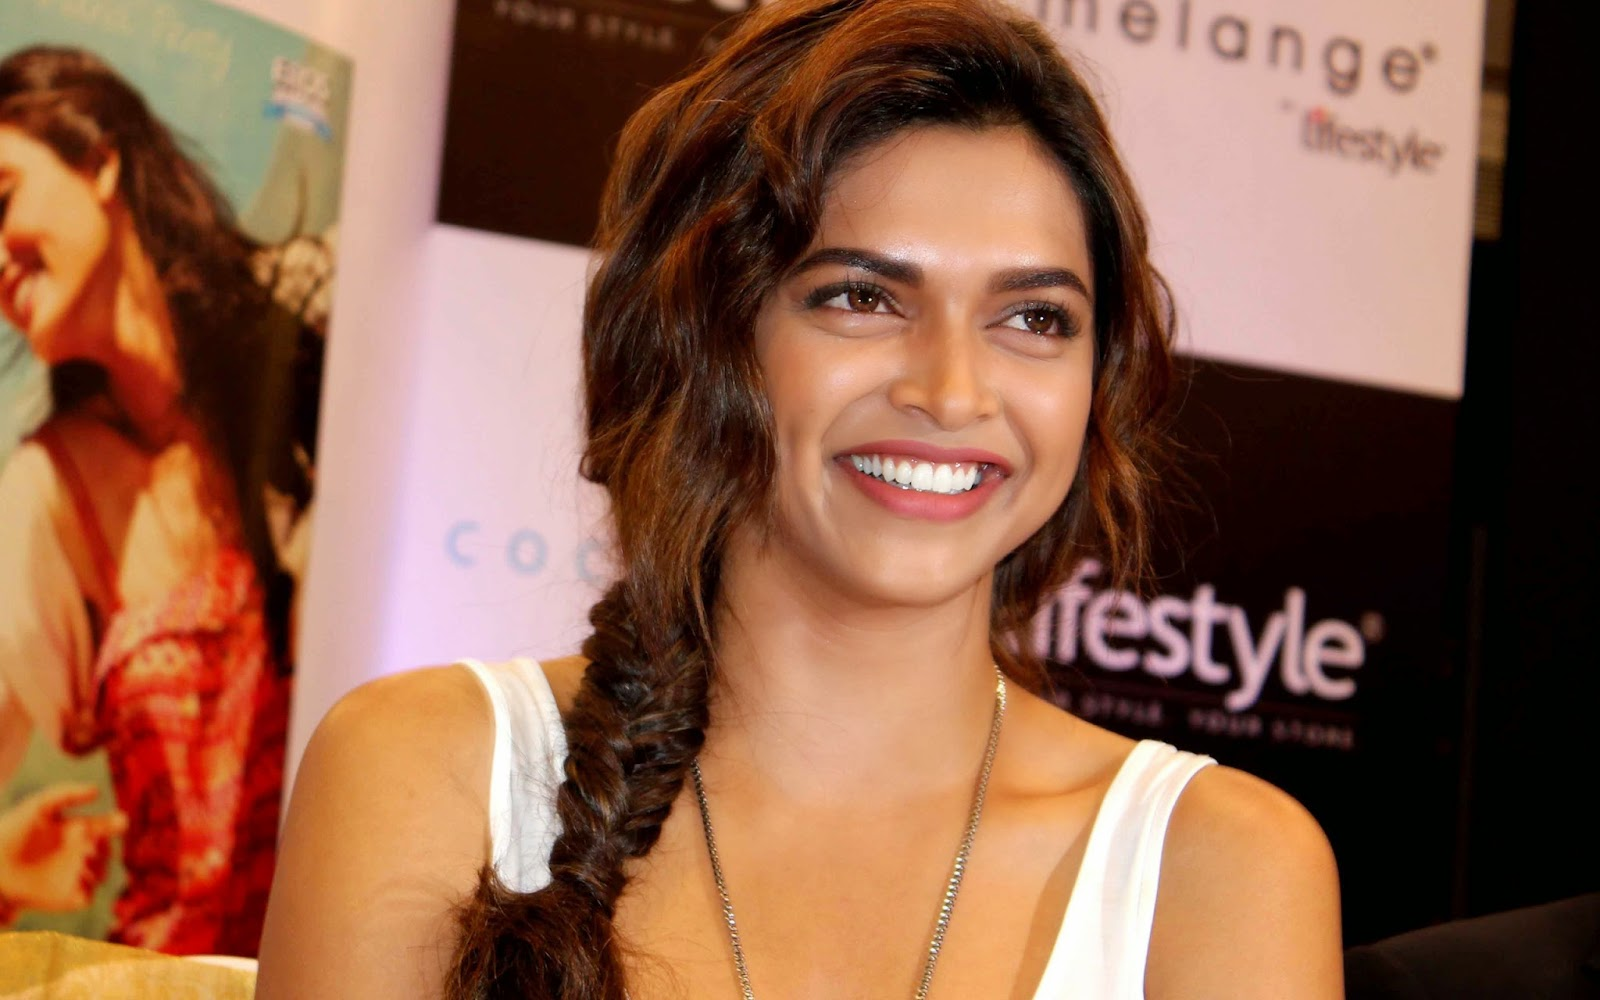 deepika padukone images, wallpapers and hot picture gallery: deepika